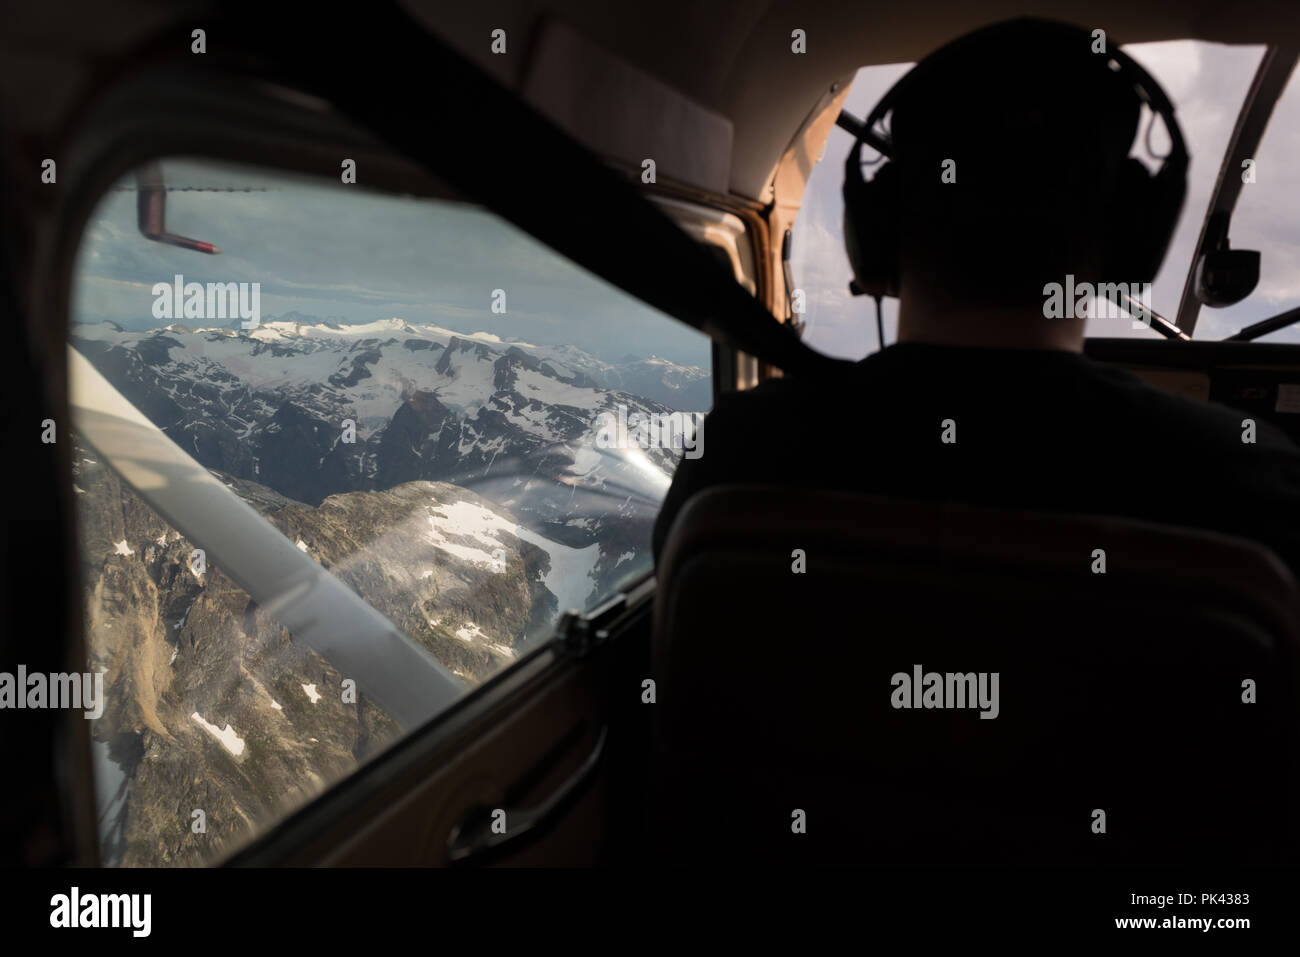 Pilot flying aircraft over snowcovered mountain - Stock Image